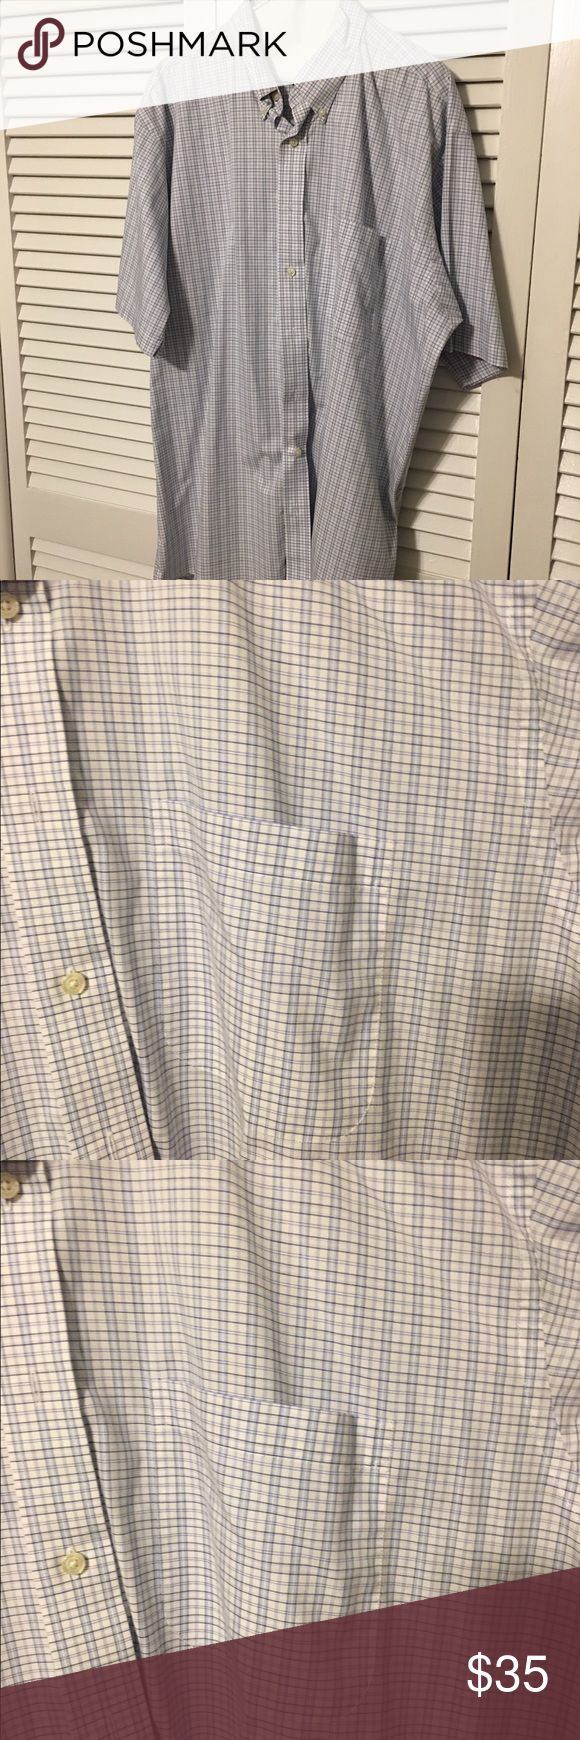 Jos A Bank Short Sleeve dress shirt Jos A Bank short sleeve dress shirt, Traveler Collection. Wrinkle resistant, shrink resistant, fade resistant. Worn maybe once. Perfect condition. jos a bank Shirts Dress Shirts